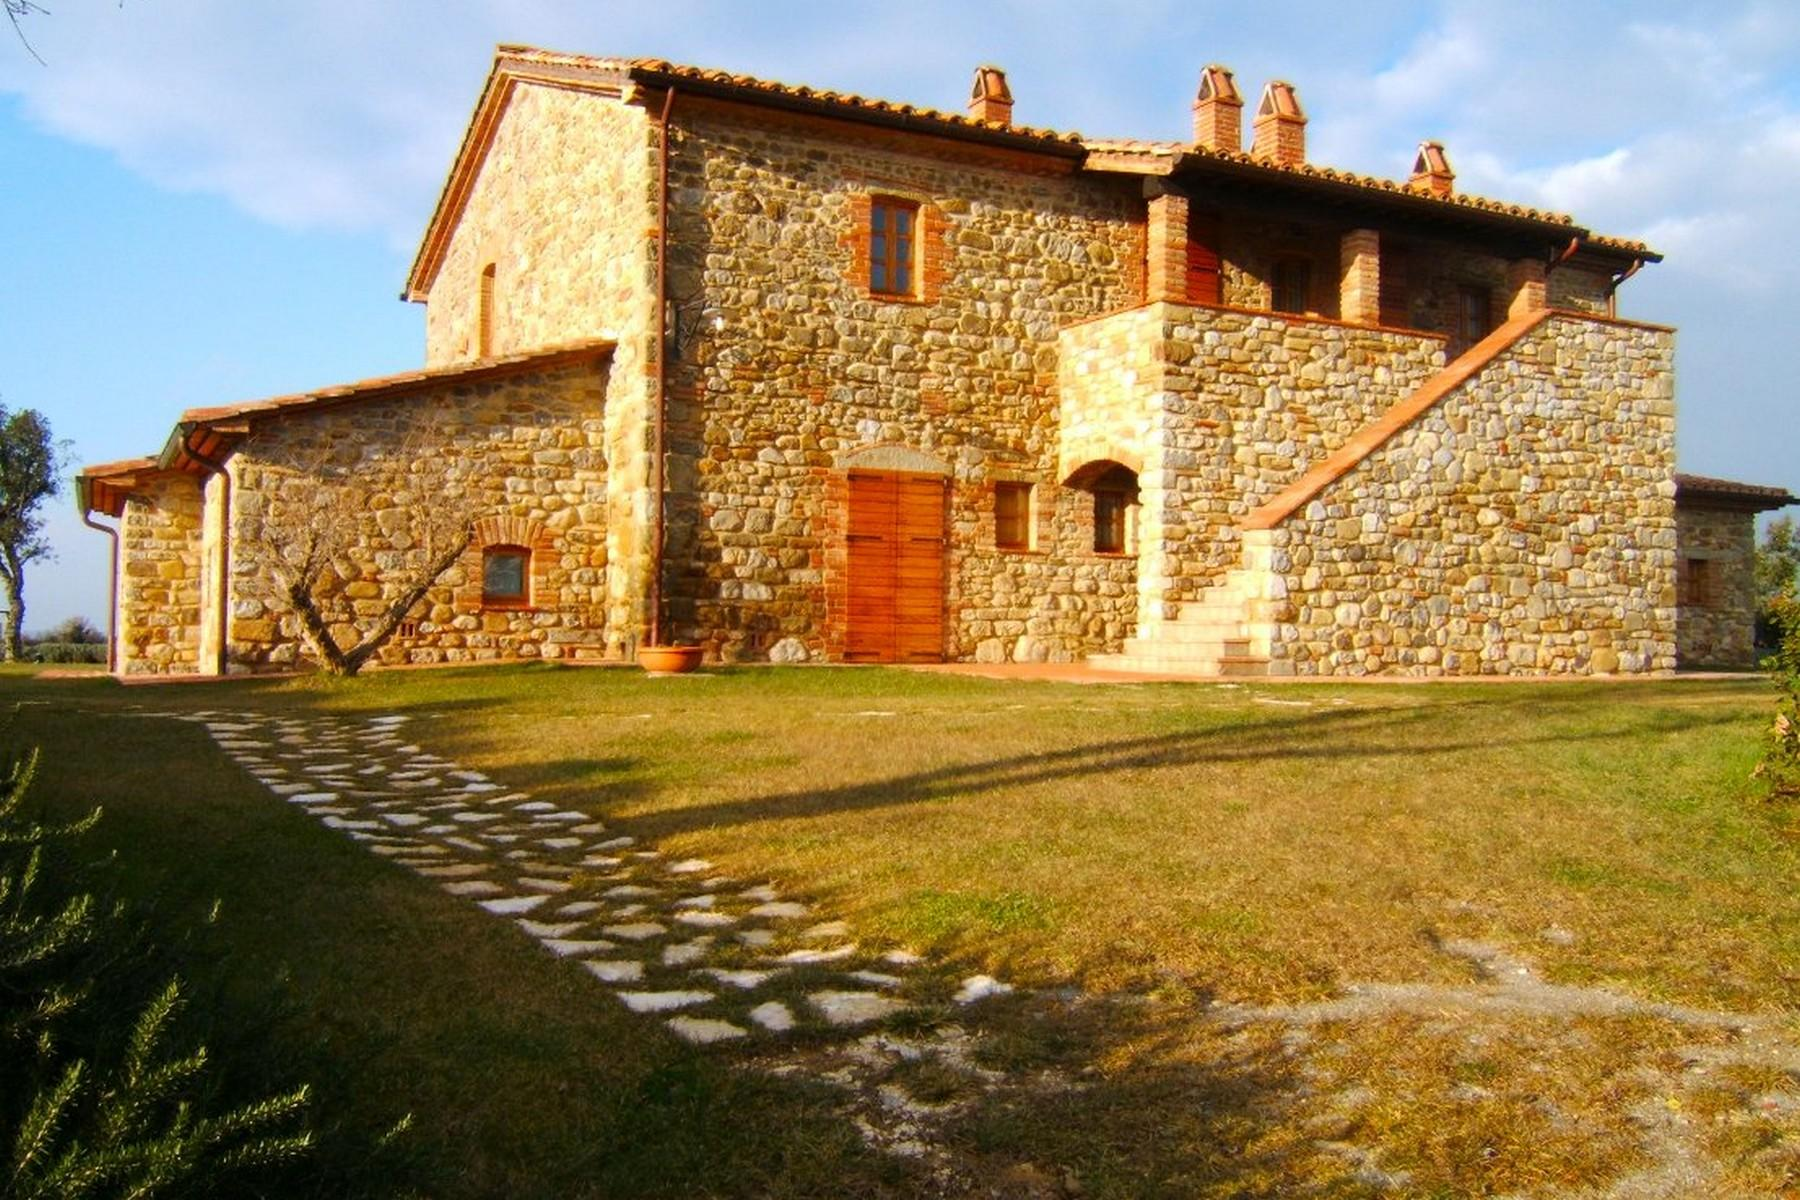 Enchanting farmhouse in Umbrian countryside - 9